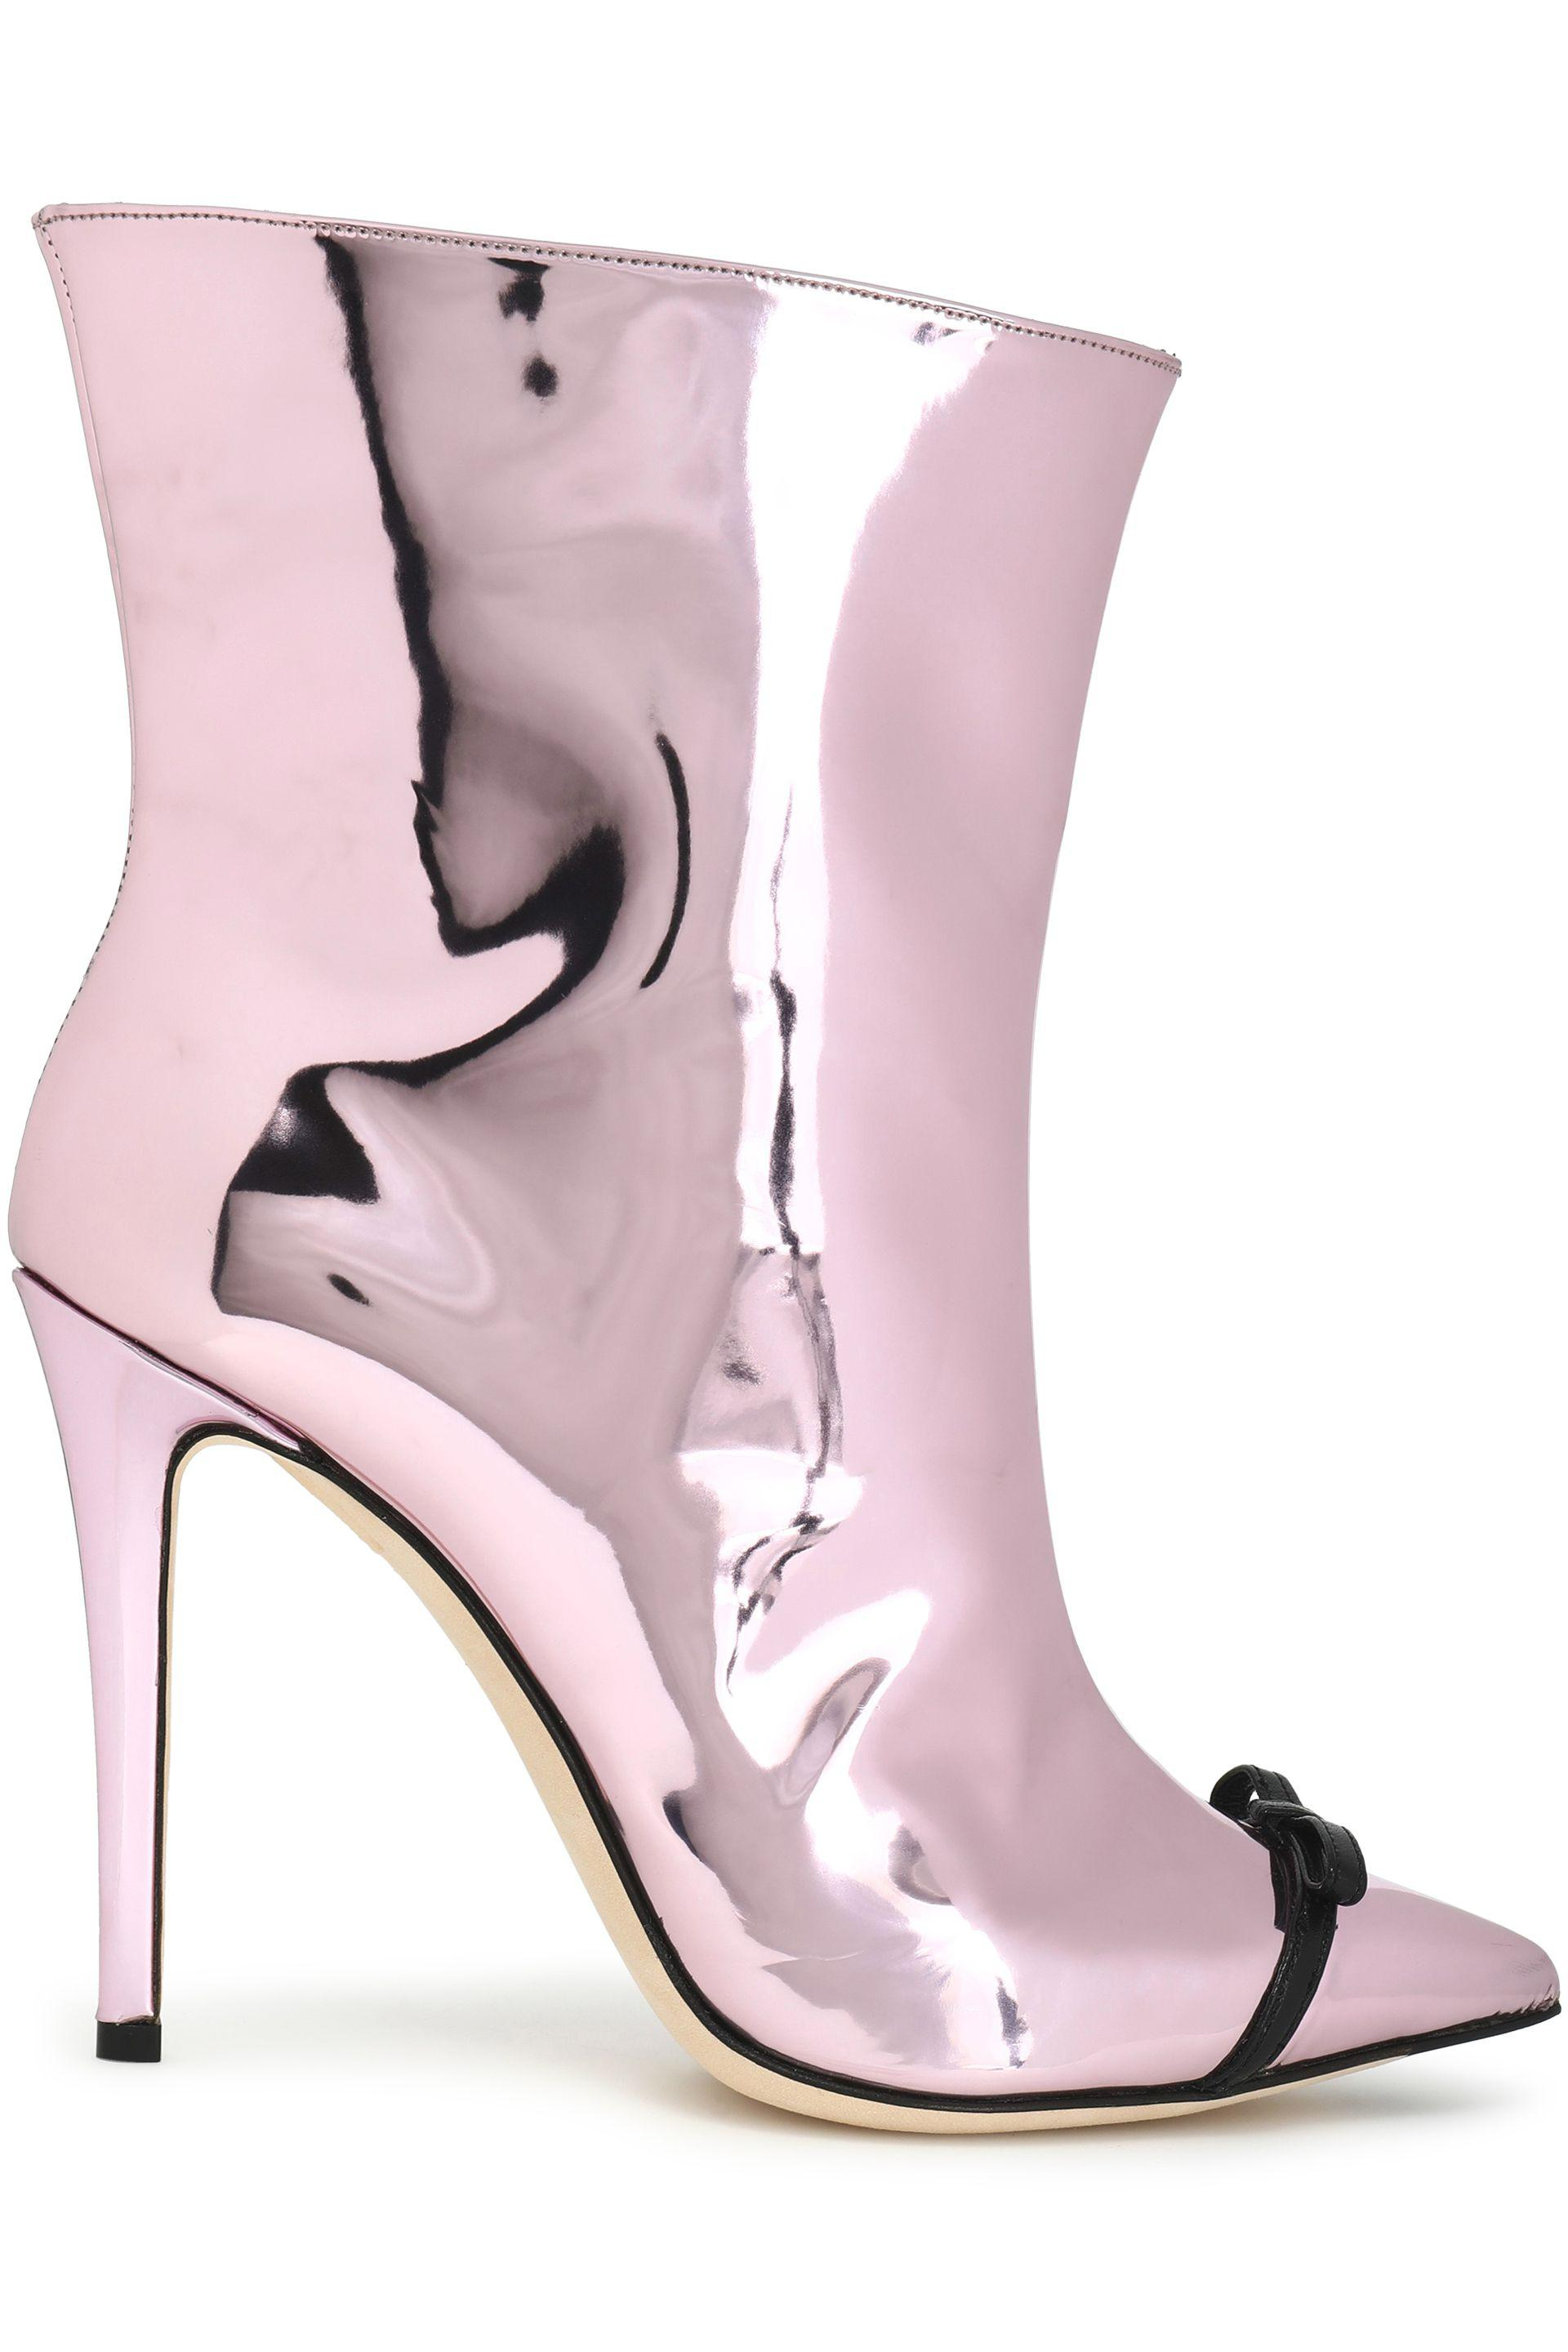 best service 7d087 3c248 marco-de -vincenzo-Baby-pink-Bow-embellished-Mirrored-leather-Ankle-Boots.jpeg